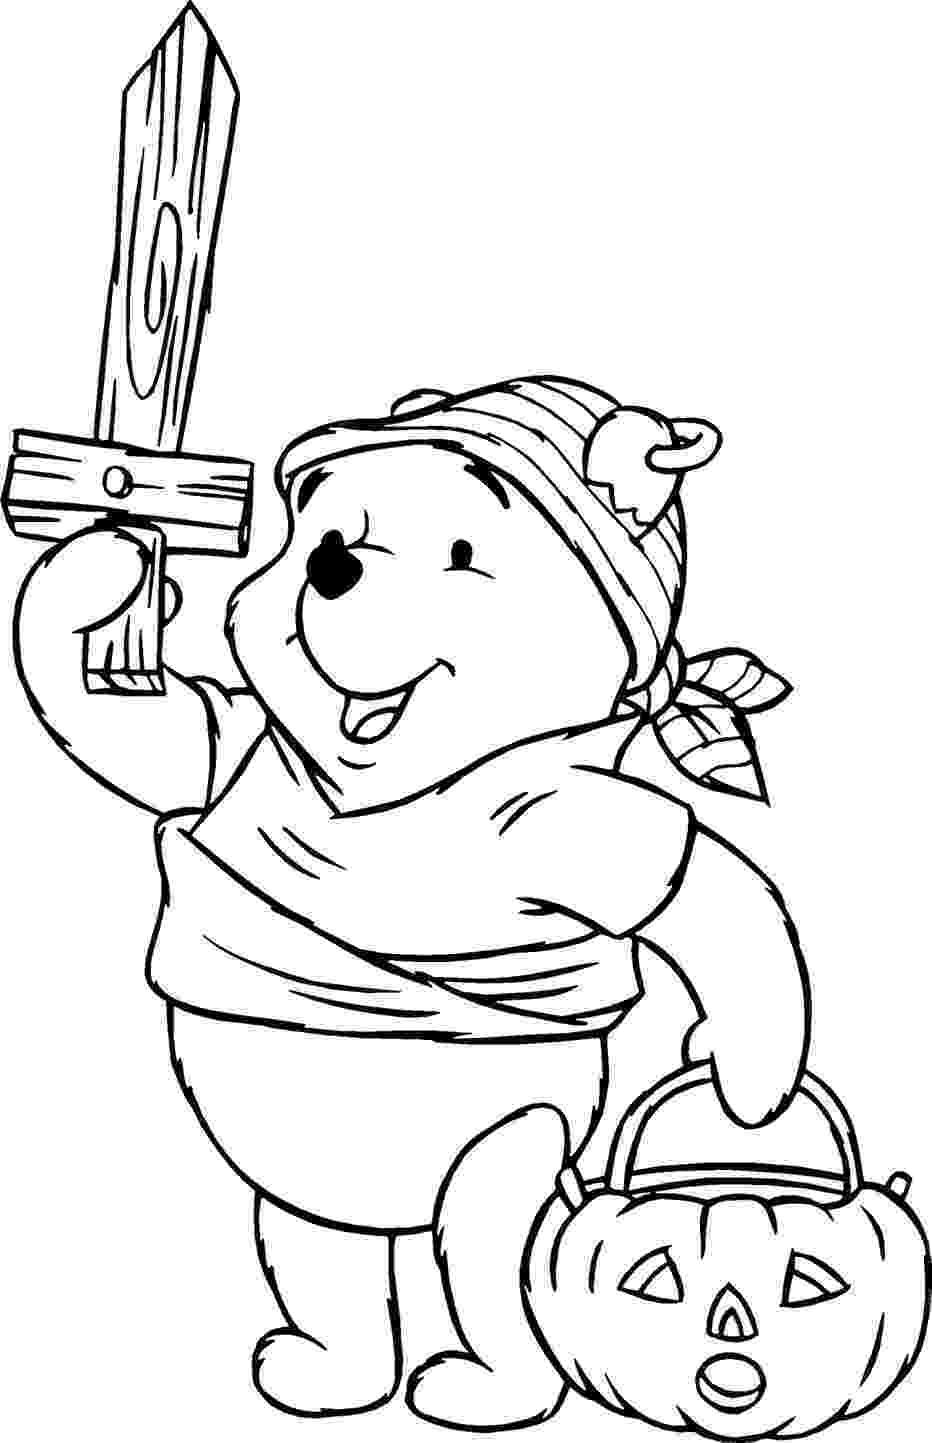 free printable coloring pages for children free printable elsa coloring pages for kids best free pages children coloring printable for